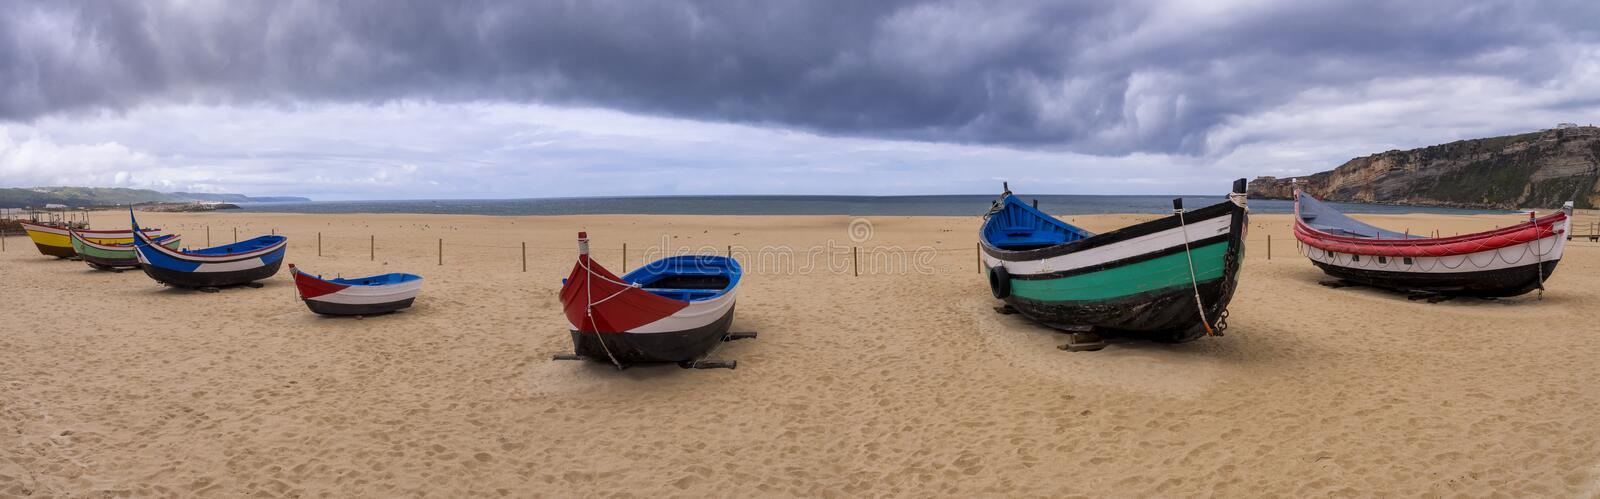 Traditional fishing boats, Nazare, Portugal. A panorama of several traditional colourful fishing boats on Nazare beach, Portugal stock photo